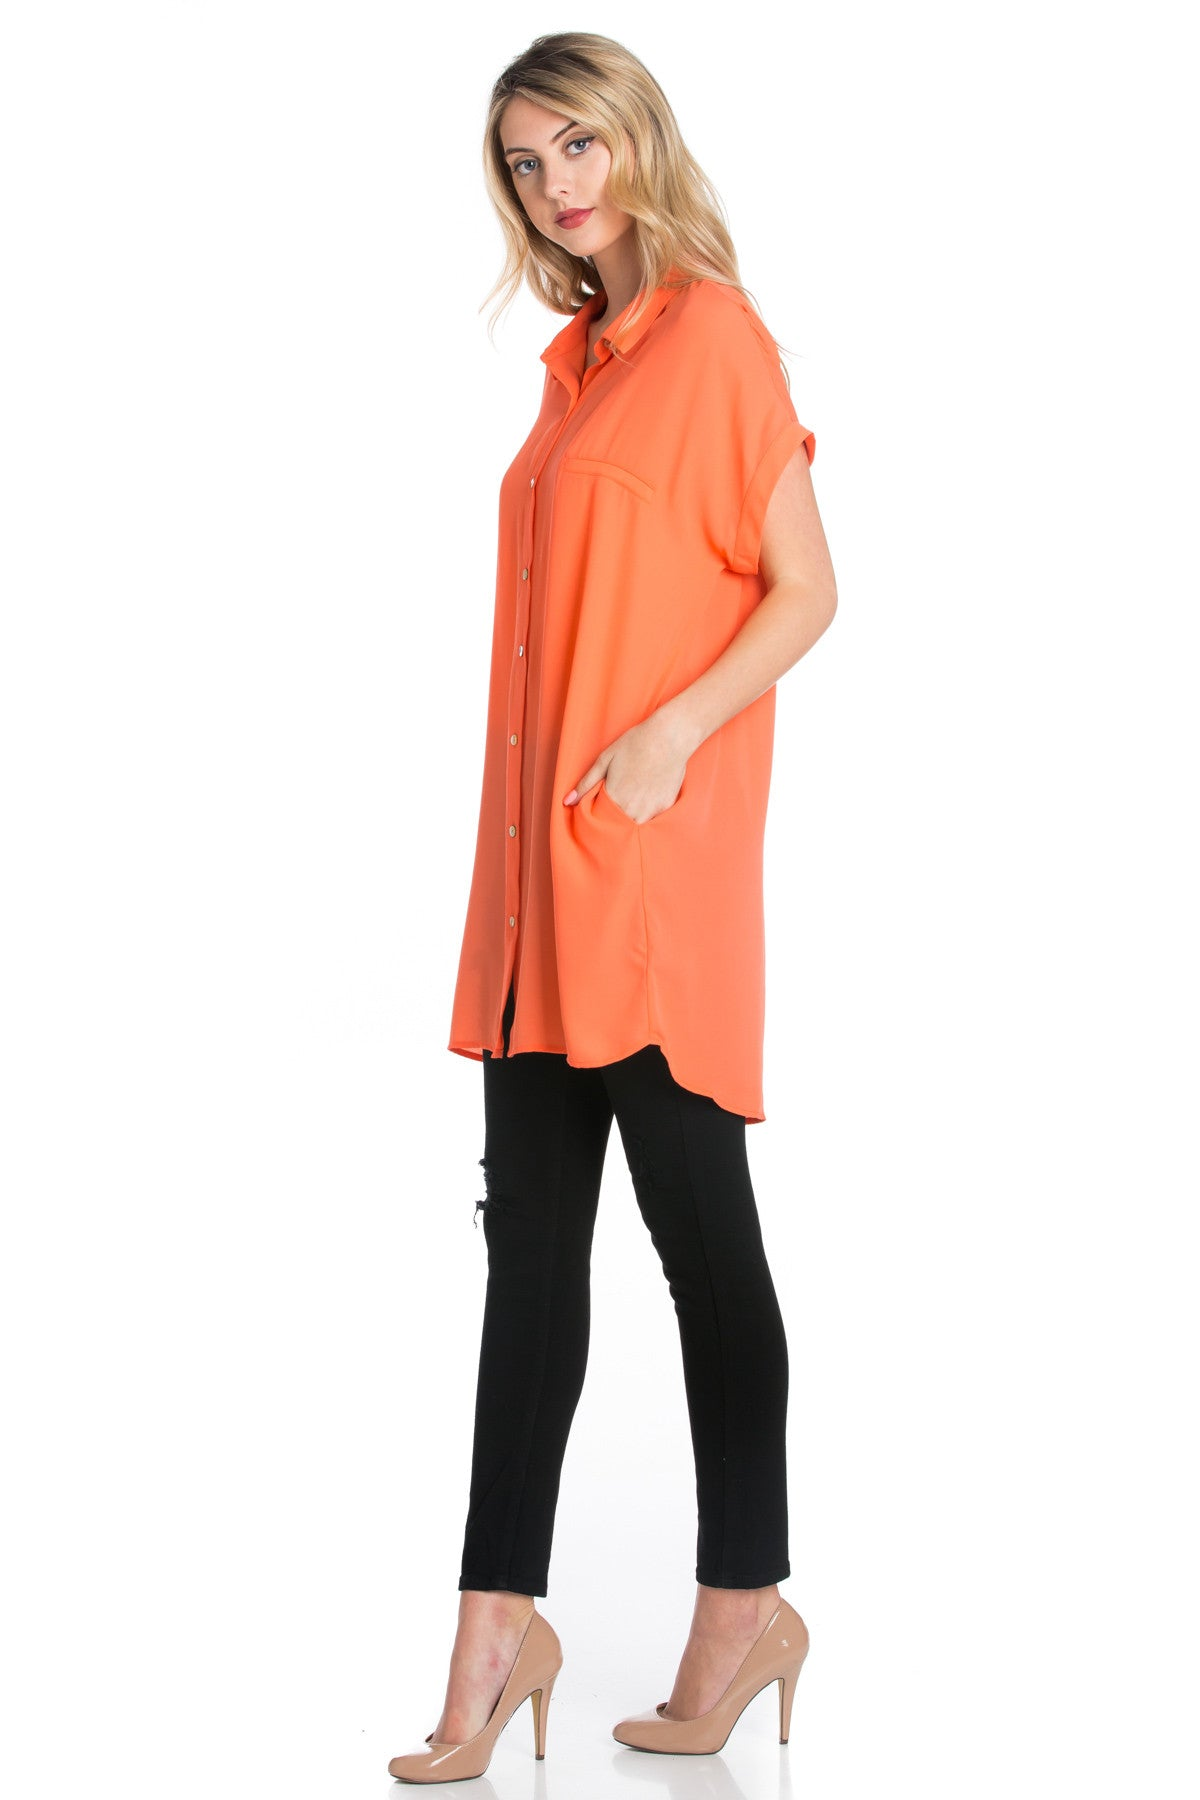 Short Sleeve Longline Button Down Chiffon Top in Sun Coral - Tops - My Yuccie - 6